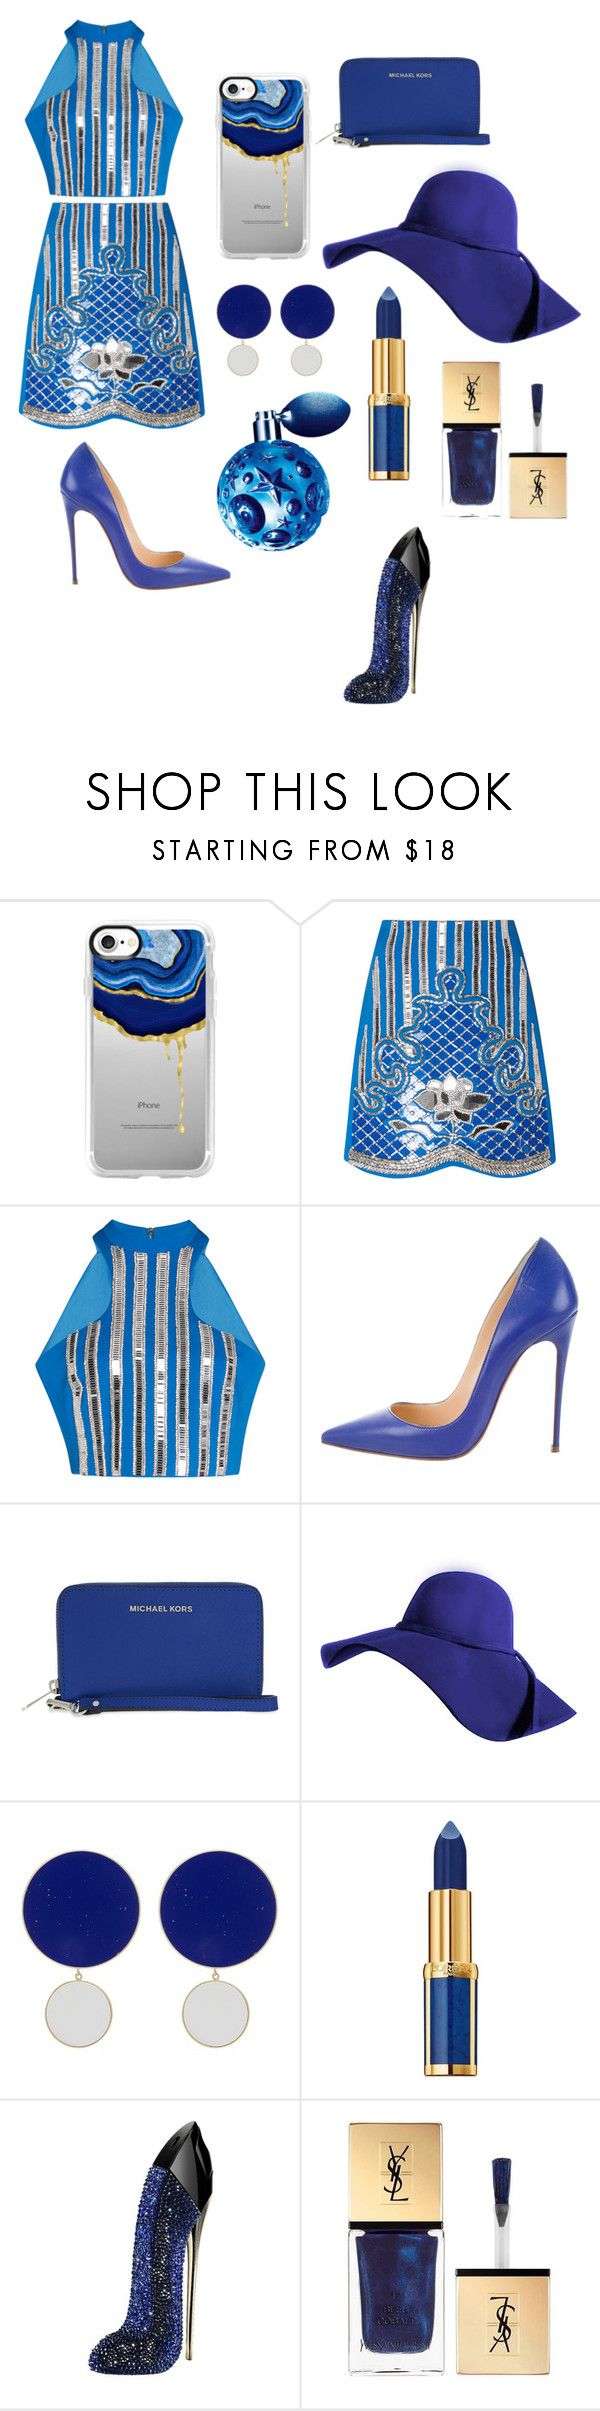 """Blue queen"" by abide-bida ❤ liked on Polyvore featuring Casetify, David Koma, Christian Louboutin, MICHAEL Michael Kors, Joanna Laura Constantine, Balmain, Carolina Herrera, Yves Saint Laurent and Thierry Mugler"